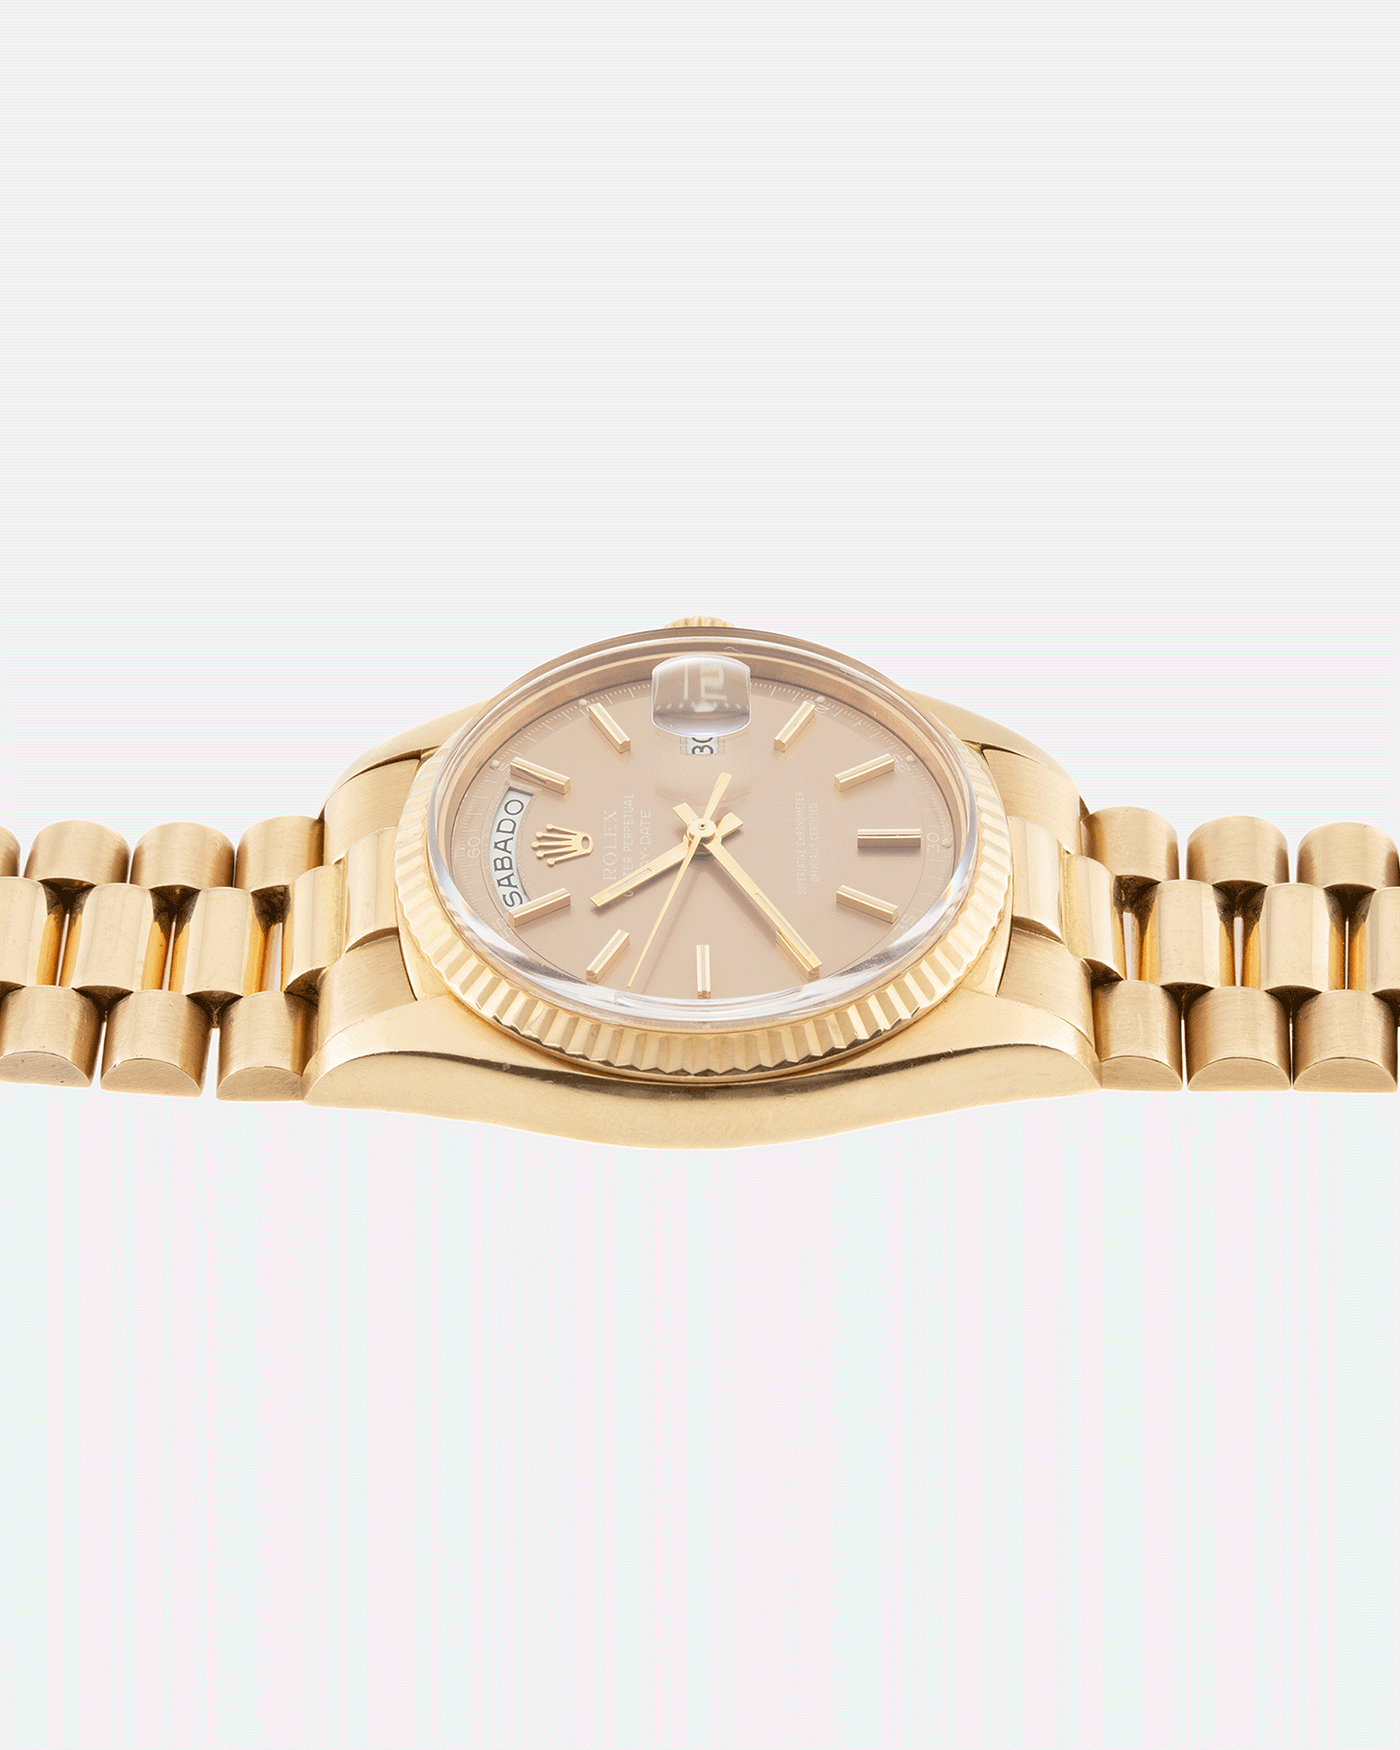 Rolex Day Date 1803 Caramel Ghost Dial